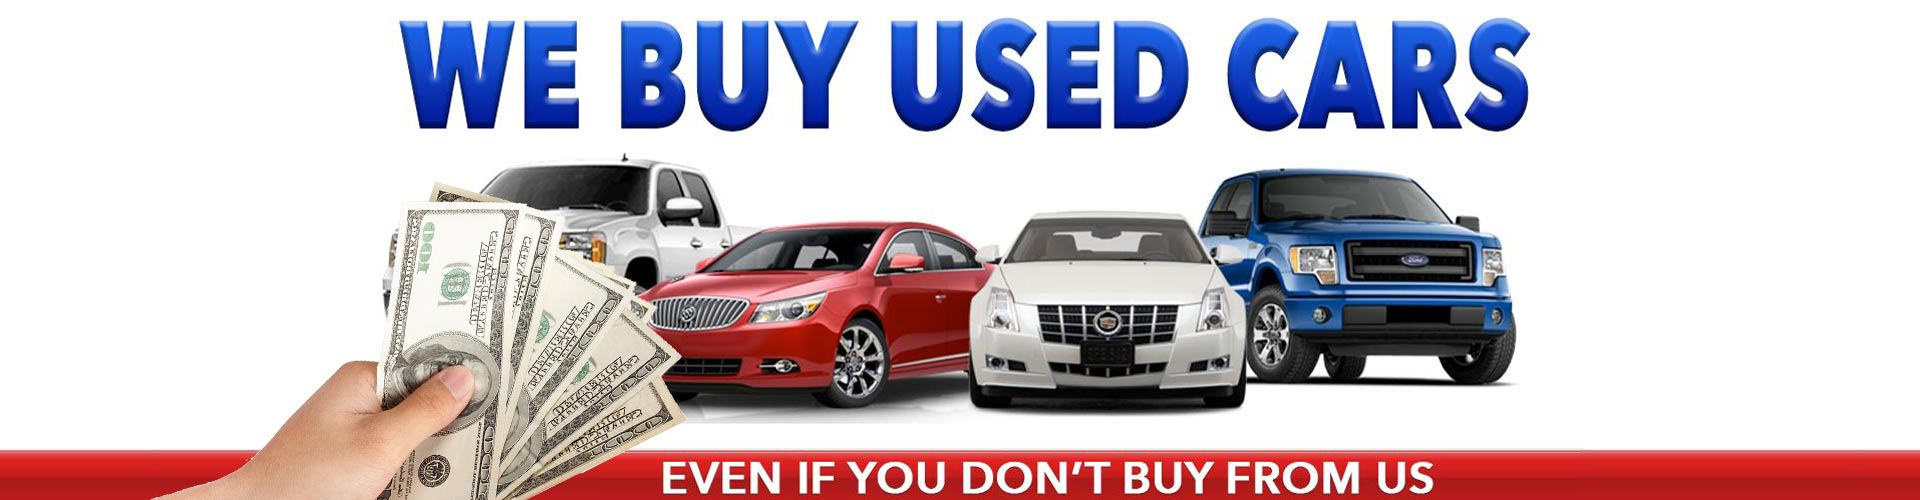 We buy used Cars